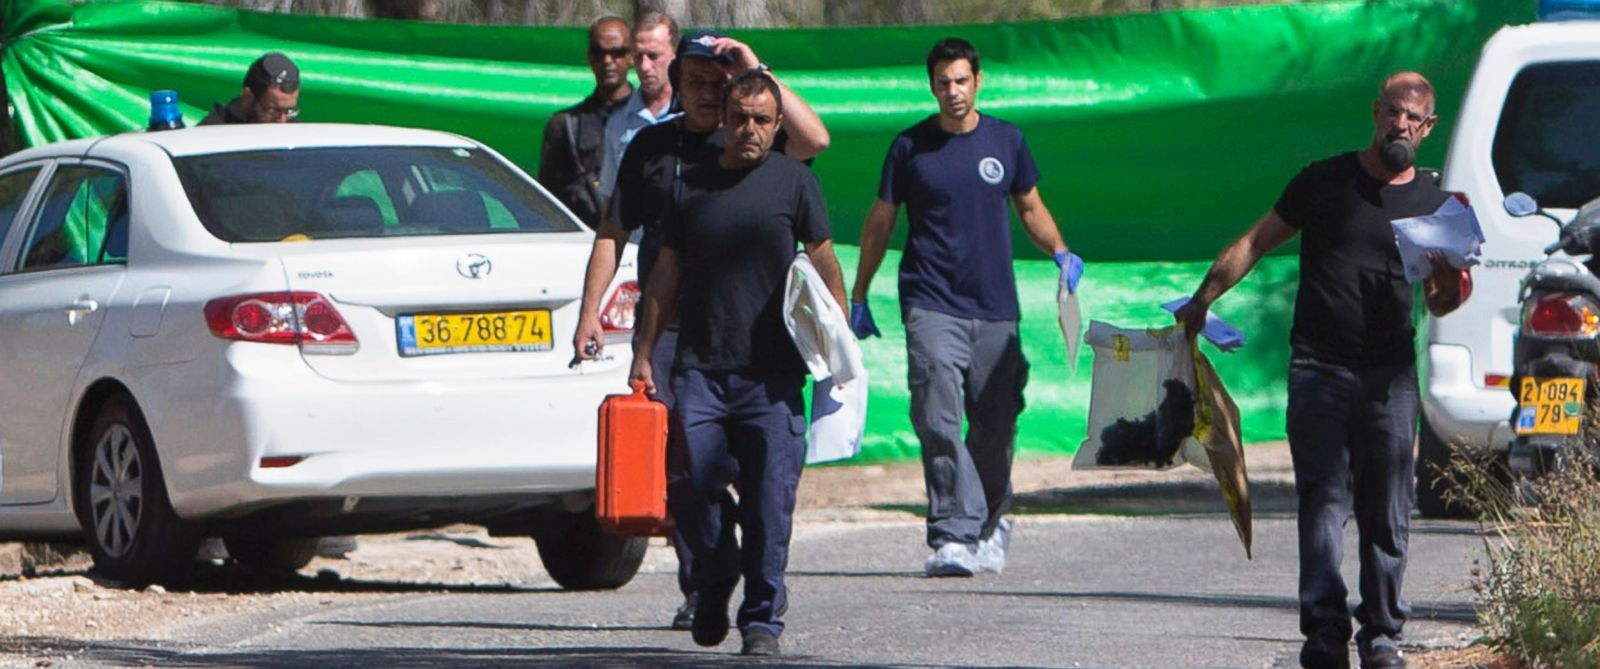 PHOTO: Israeli forensic police officers carry evidence bags from a forest in Jerusalem, July 2, 2014, after a Palestinian teen was found murdered.